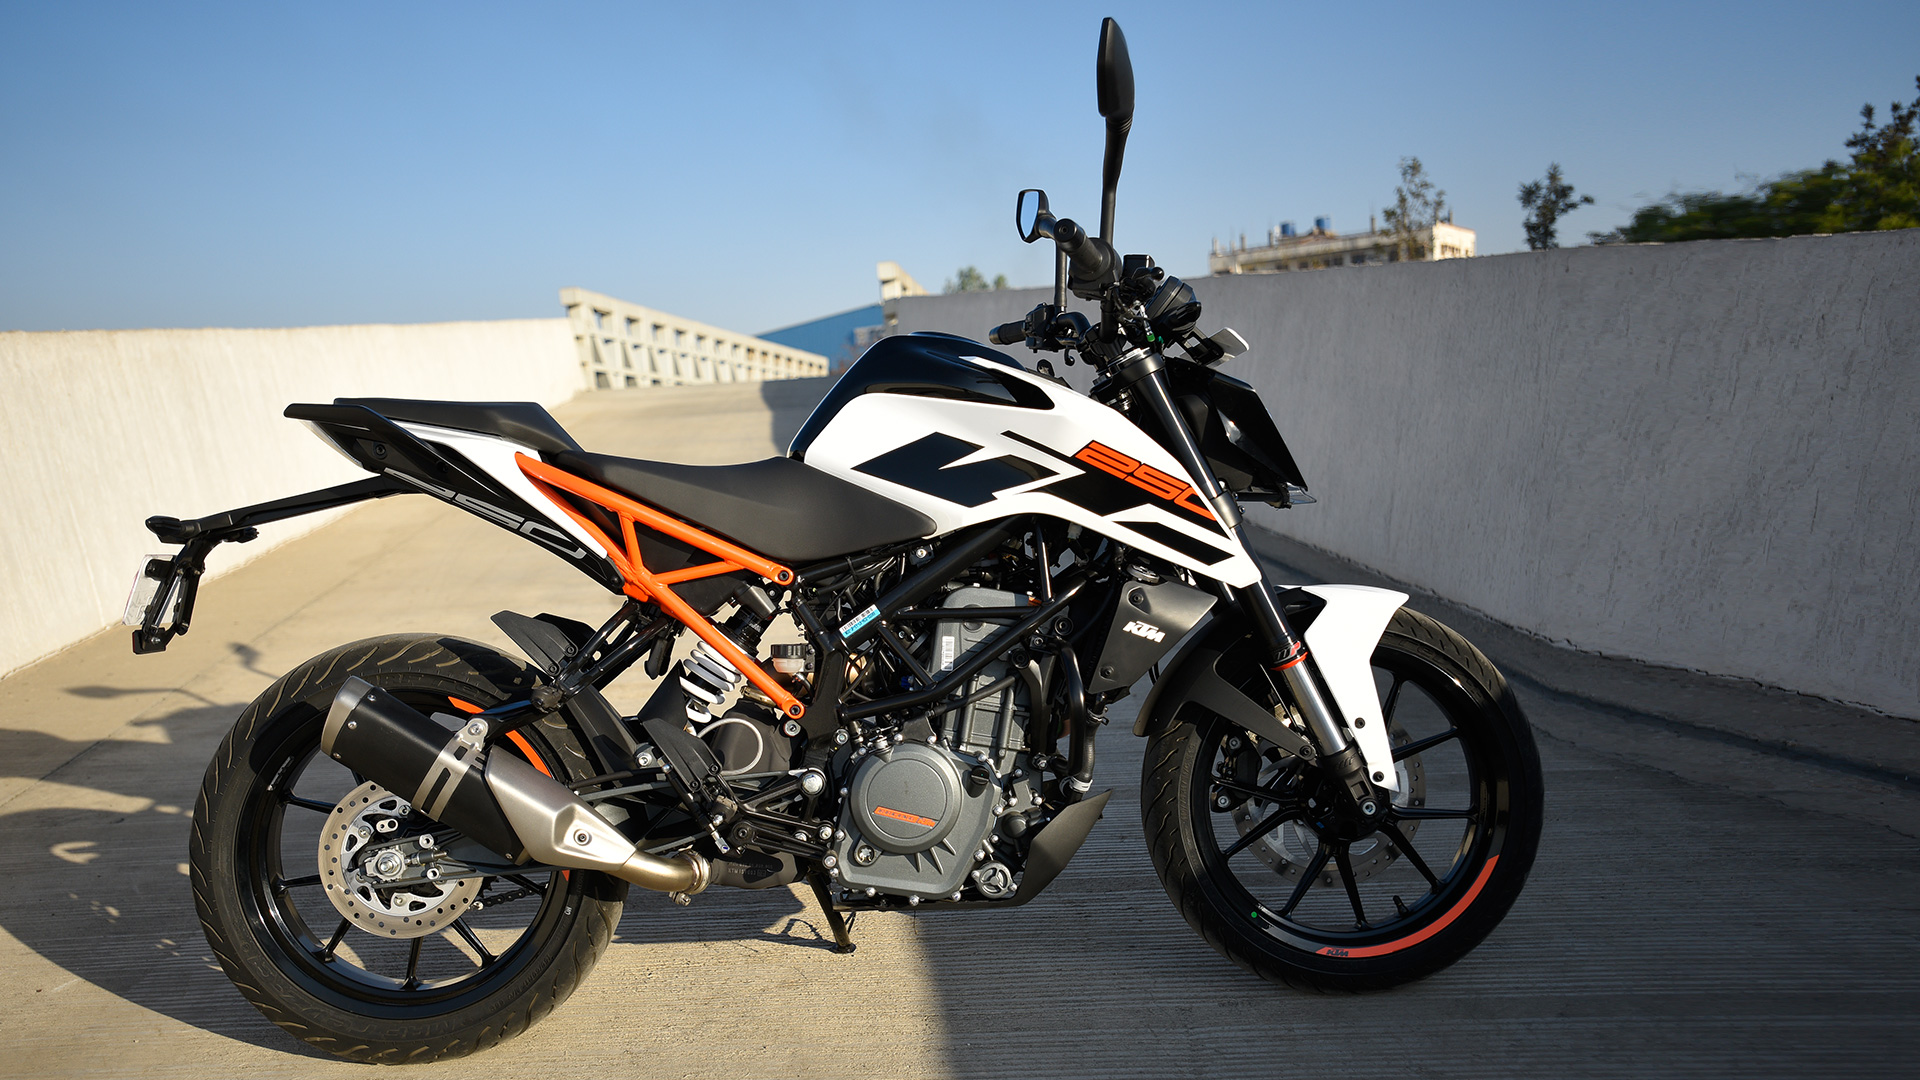 Ktm Duke Bike Price In India